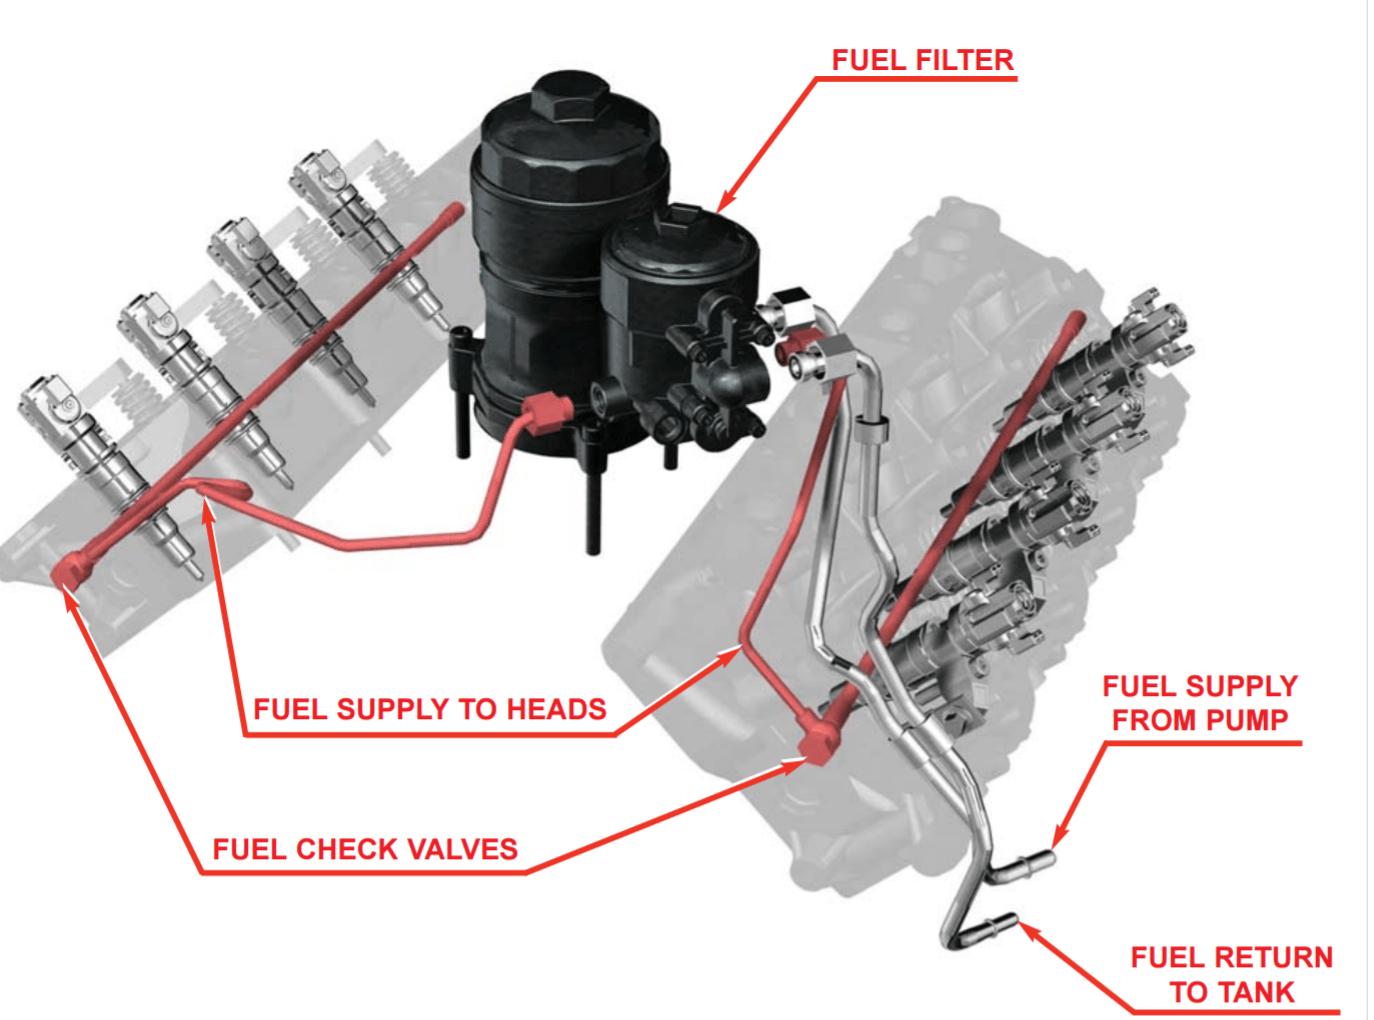 hight resolution of ford 6 0 fuel system diagram wiring diagrams data ford 6 0 diesel fuel system diagram ford 6 0 fuel system diagram